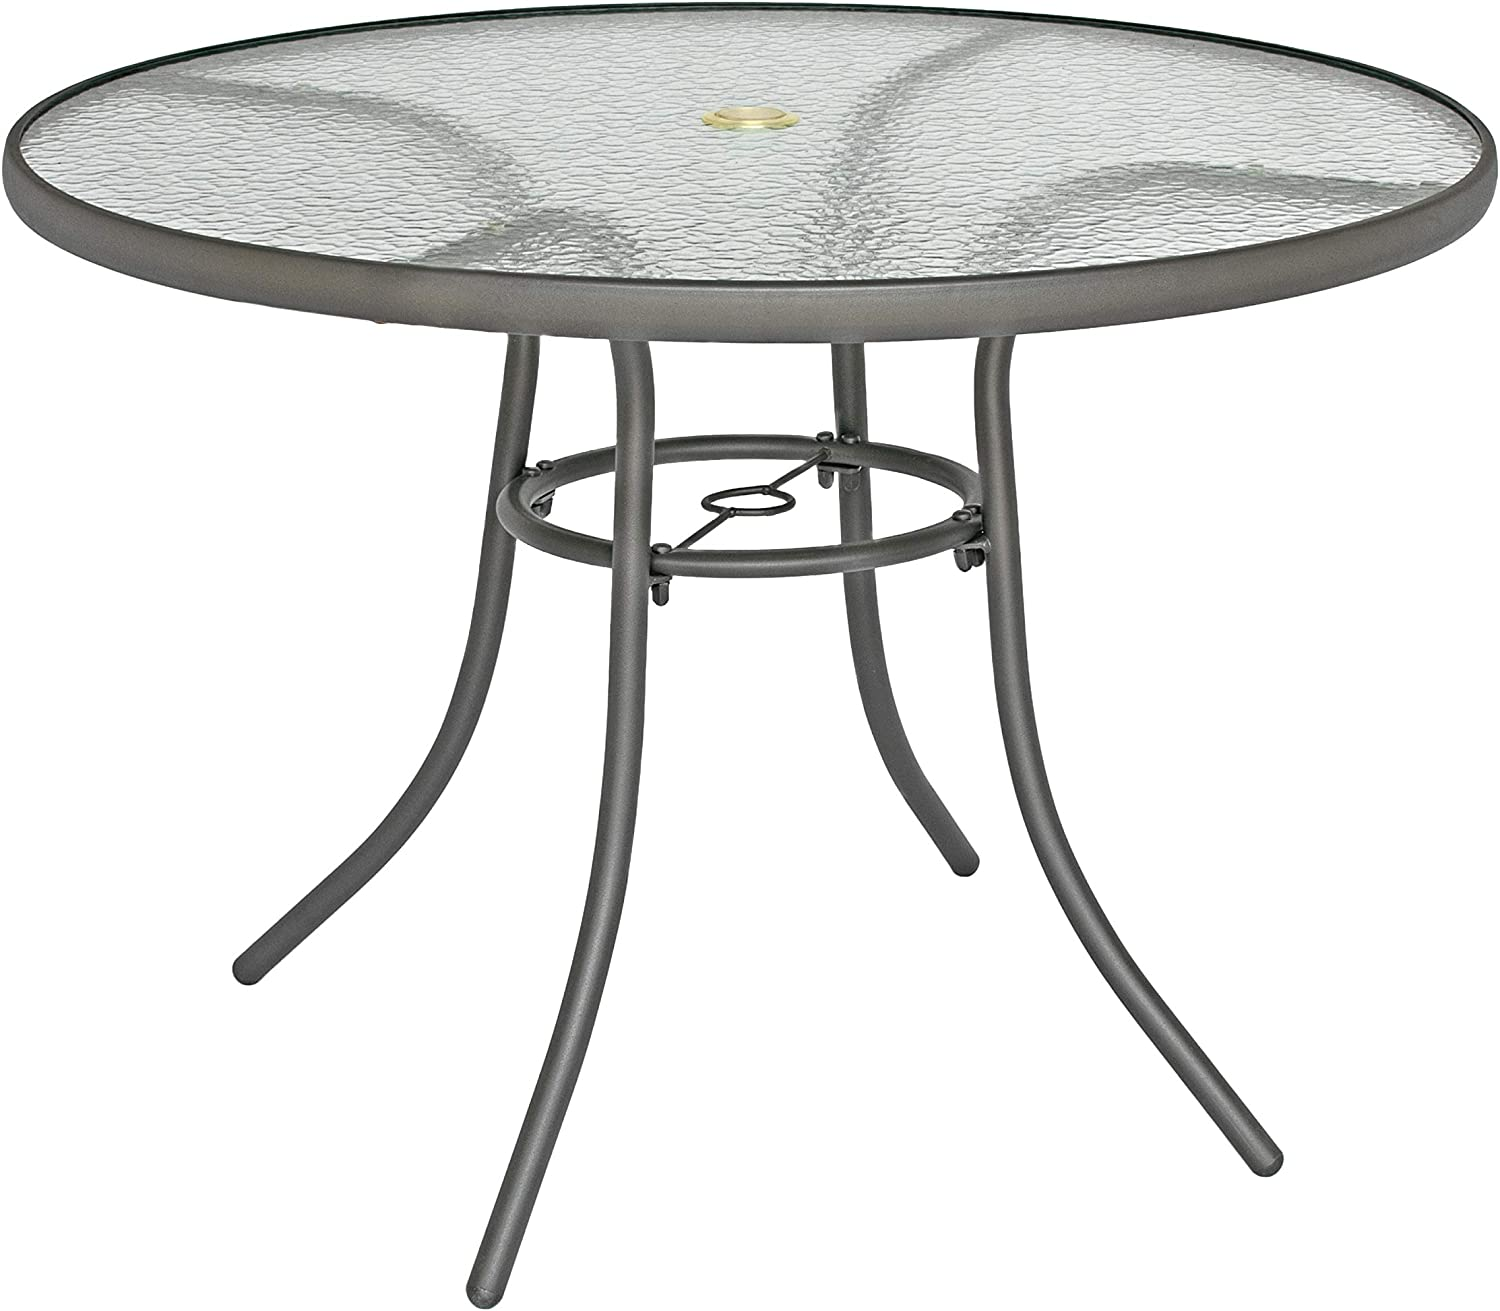 Rio Brands 40 inch Sienna Round Patio Table with Tempered Glass Top Shadow Gray